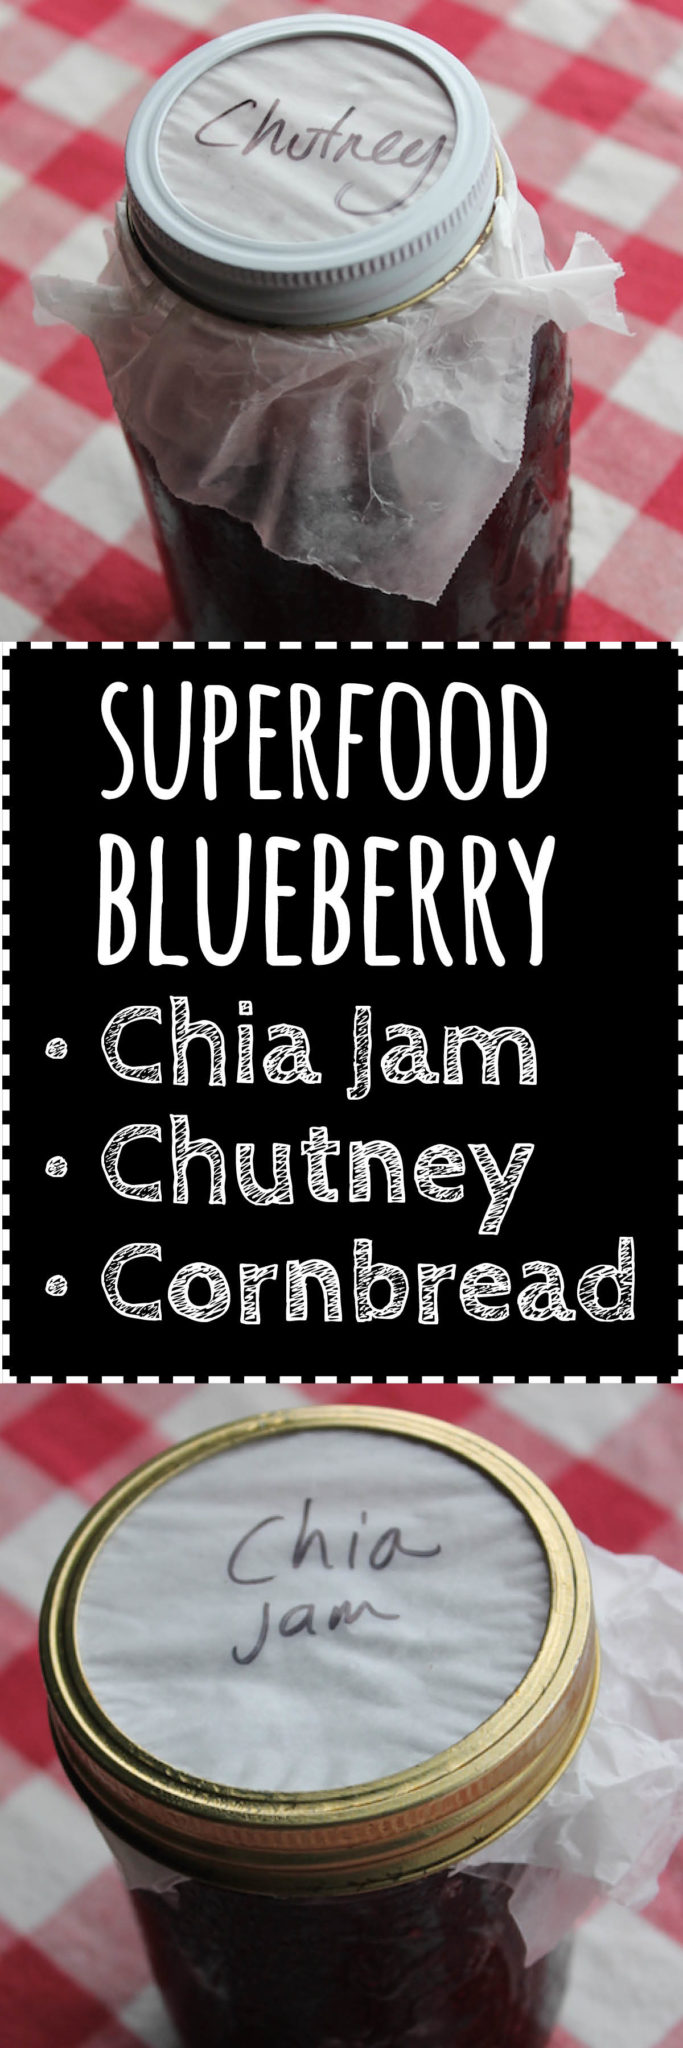 Easy delicious superfood blueberry chia jam, blueberry chutney and blueberry cornbread